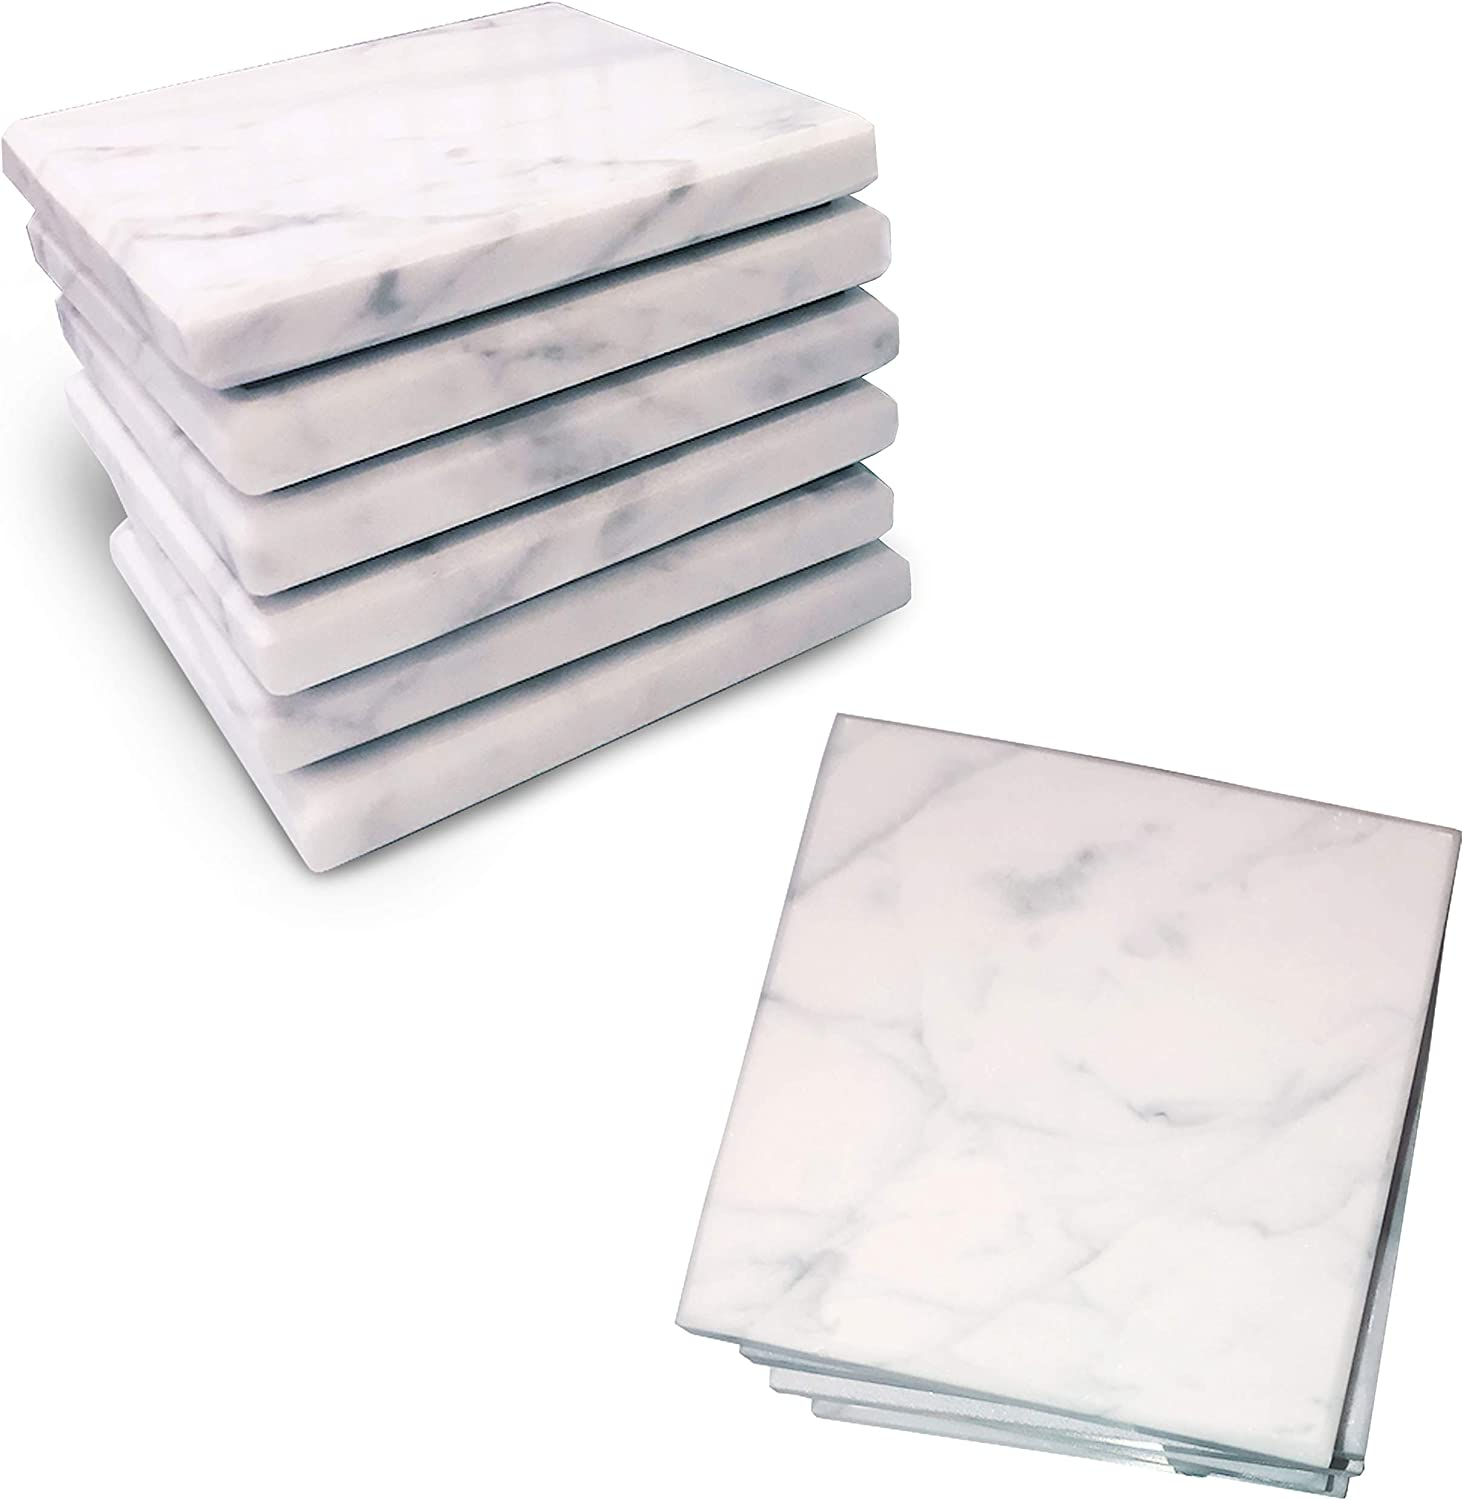 Marble Coaster 100% real marble absorbent coasters set - with felt back, protects desktops, countertops, prevents water rings, great gift for holidays, home decor, housewarming, kitchen, set of 6